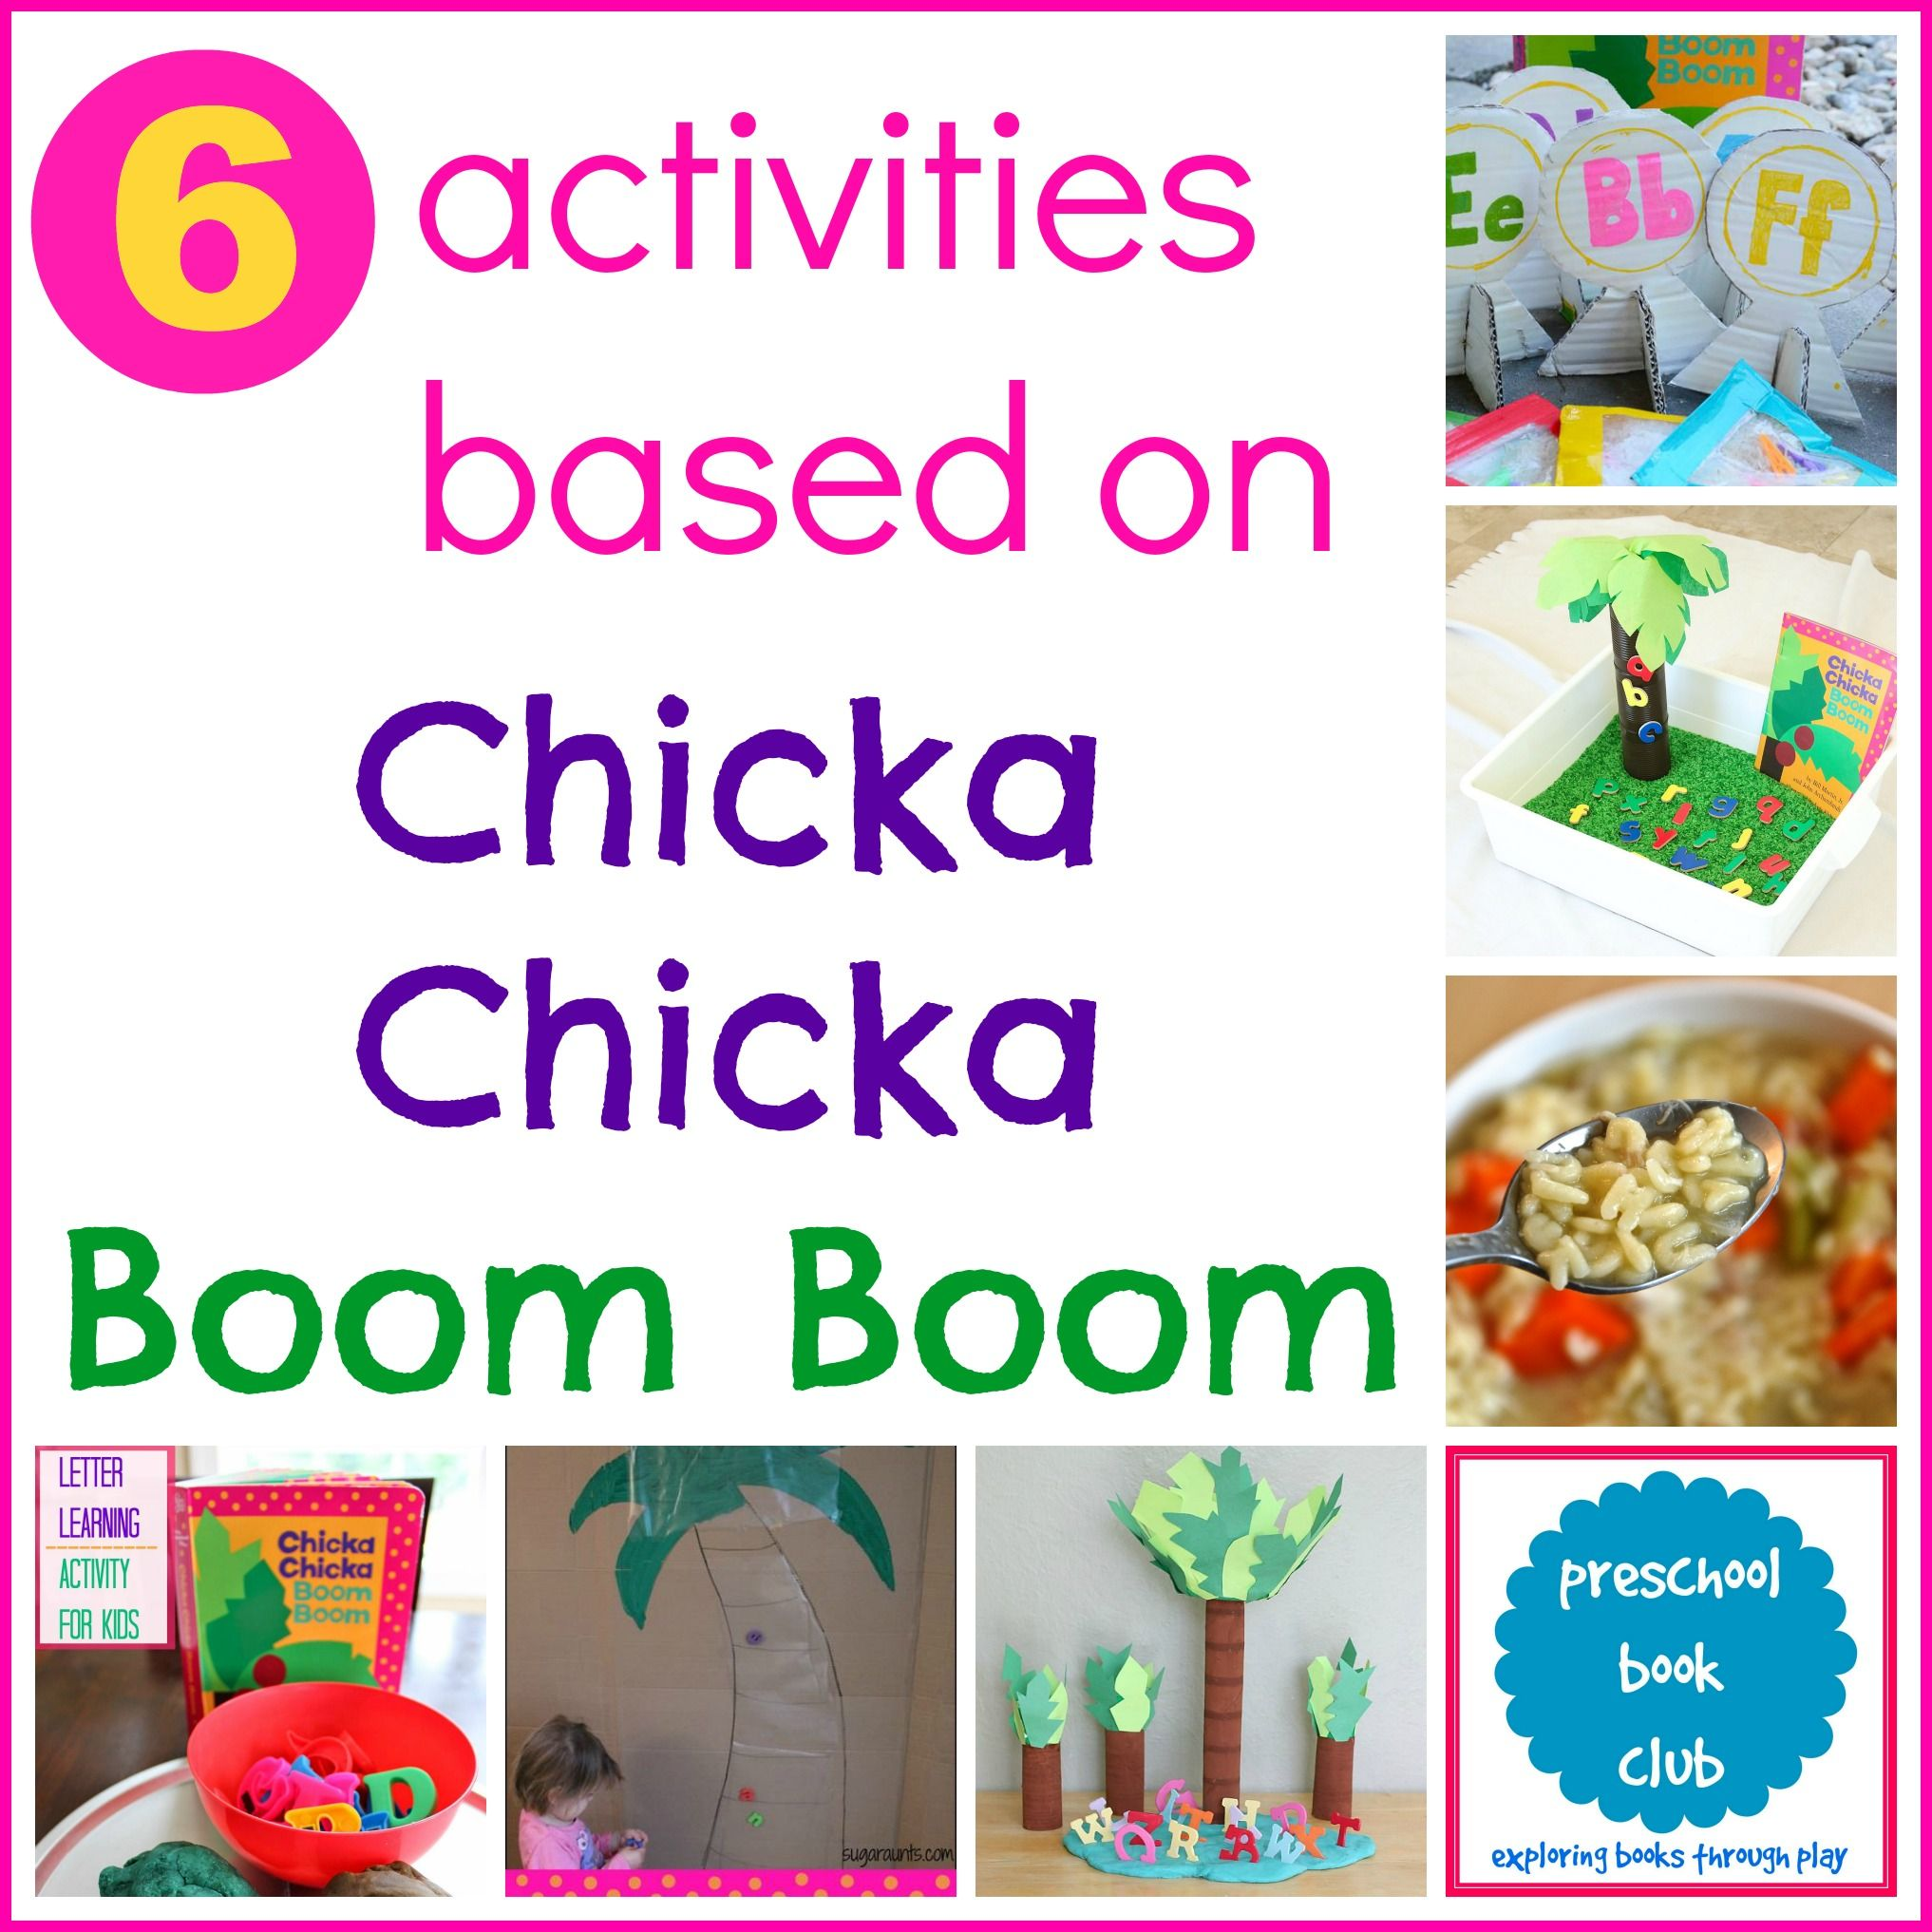 Chicka Chicka Boom Boom Activities With Images